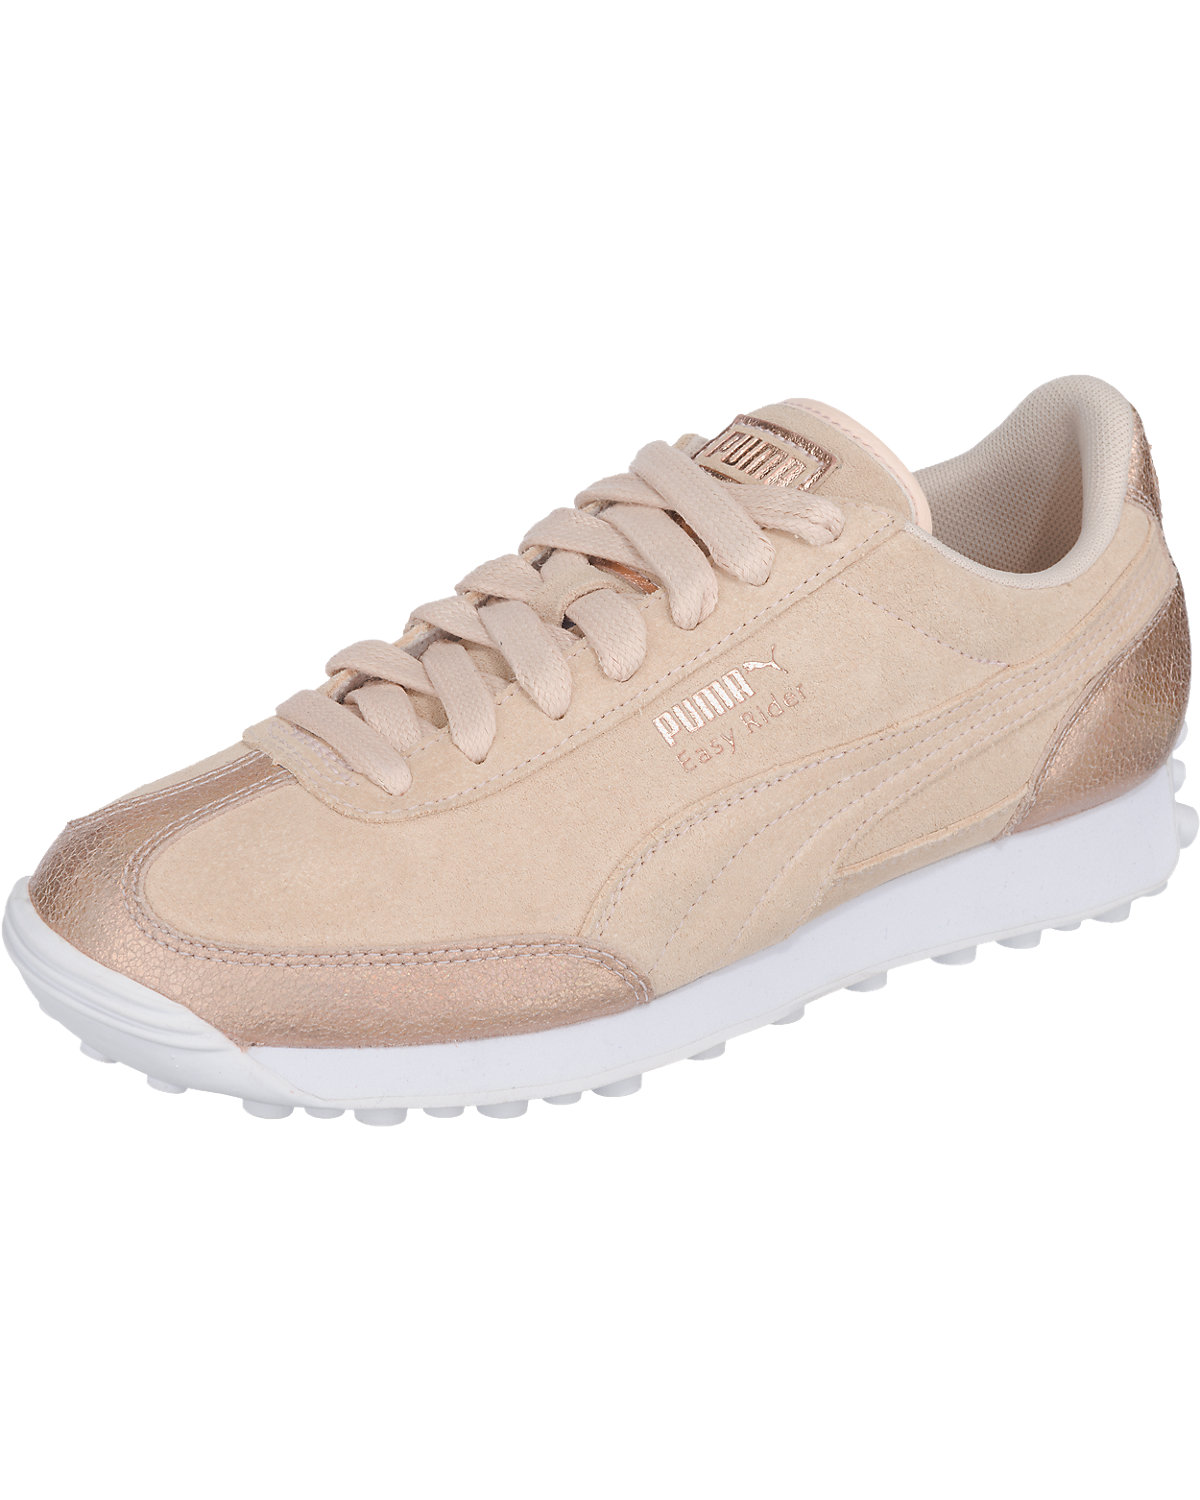 PUMA, LunaLux Easy Rider LunaLux PUMA, Wn's Sneakers Low, rosa 56155d